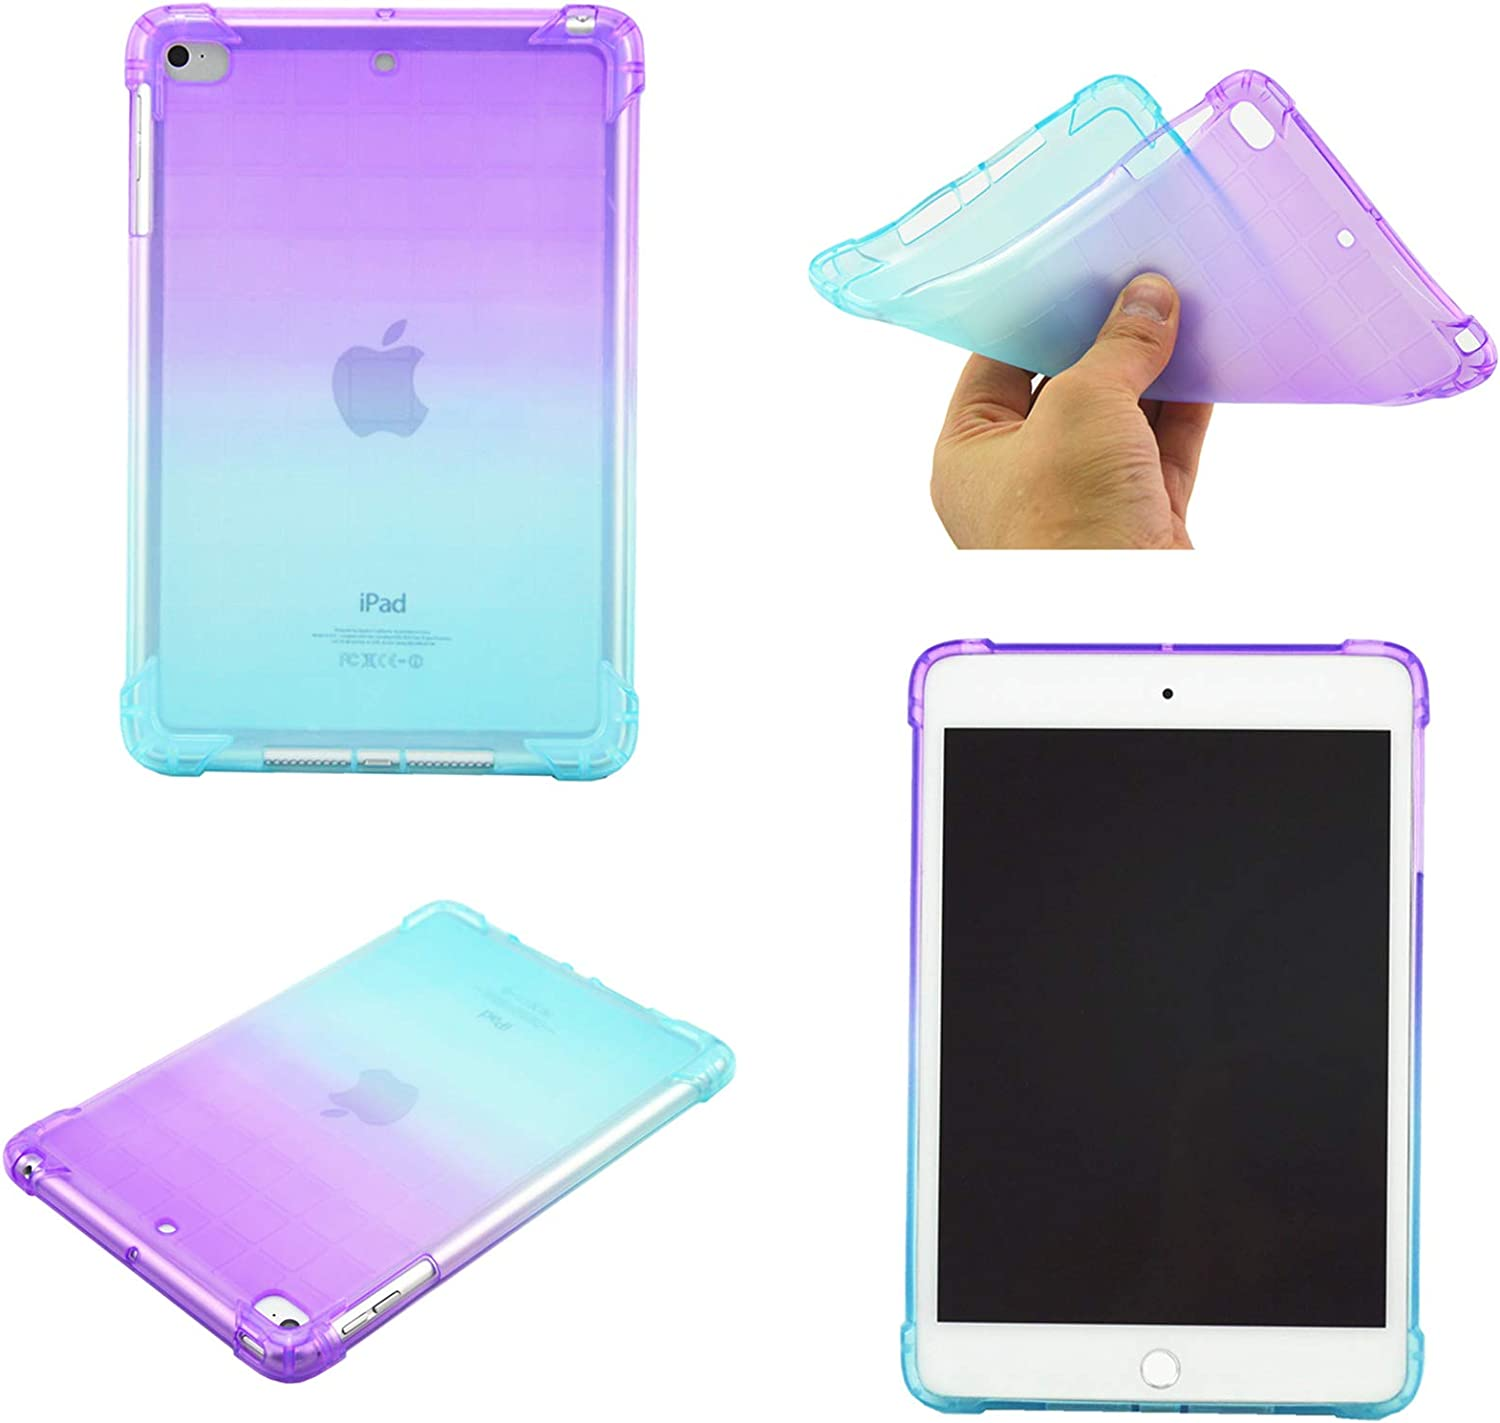 2019 Yellow Ultra Slim Lightweight Flexible TPU Silicone Back Tablet Shockproof Cover ,MOIKY Blue Case for iPad Mini 1 2 3 4 5,Soft Clear Case for iPad Mini//Mini 2// Mini 3// Mini 4// iPad Mini 5